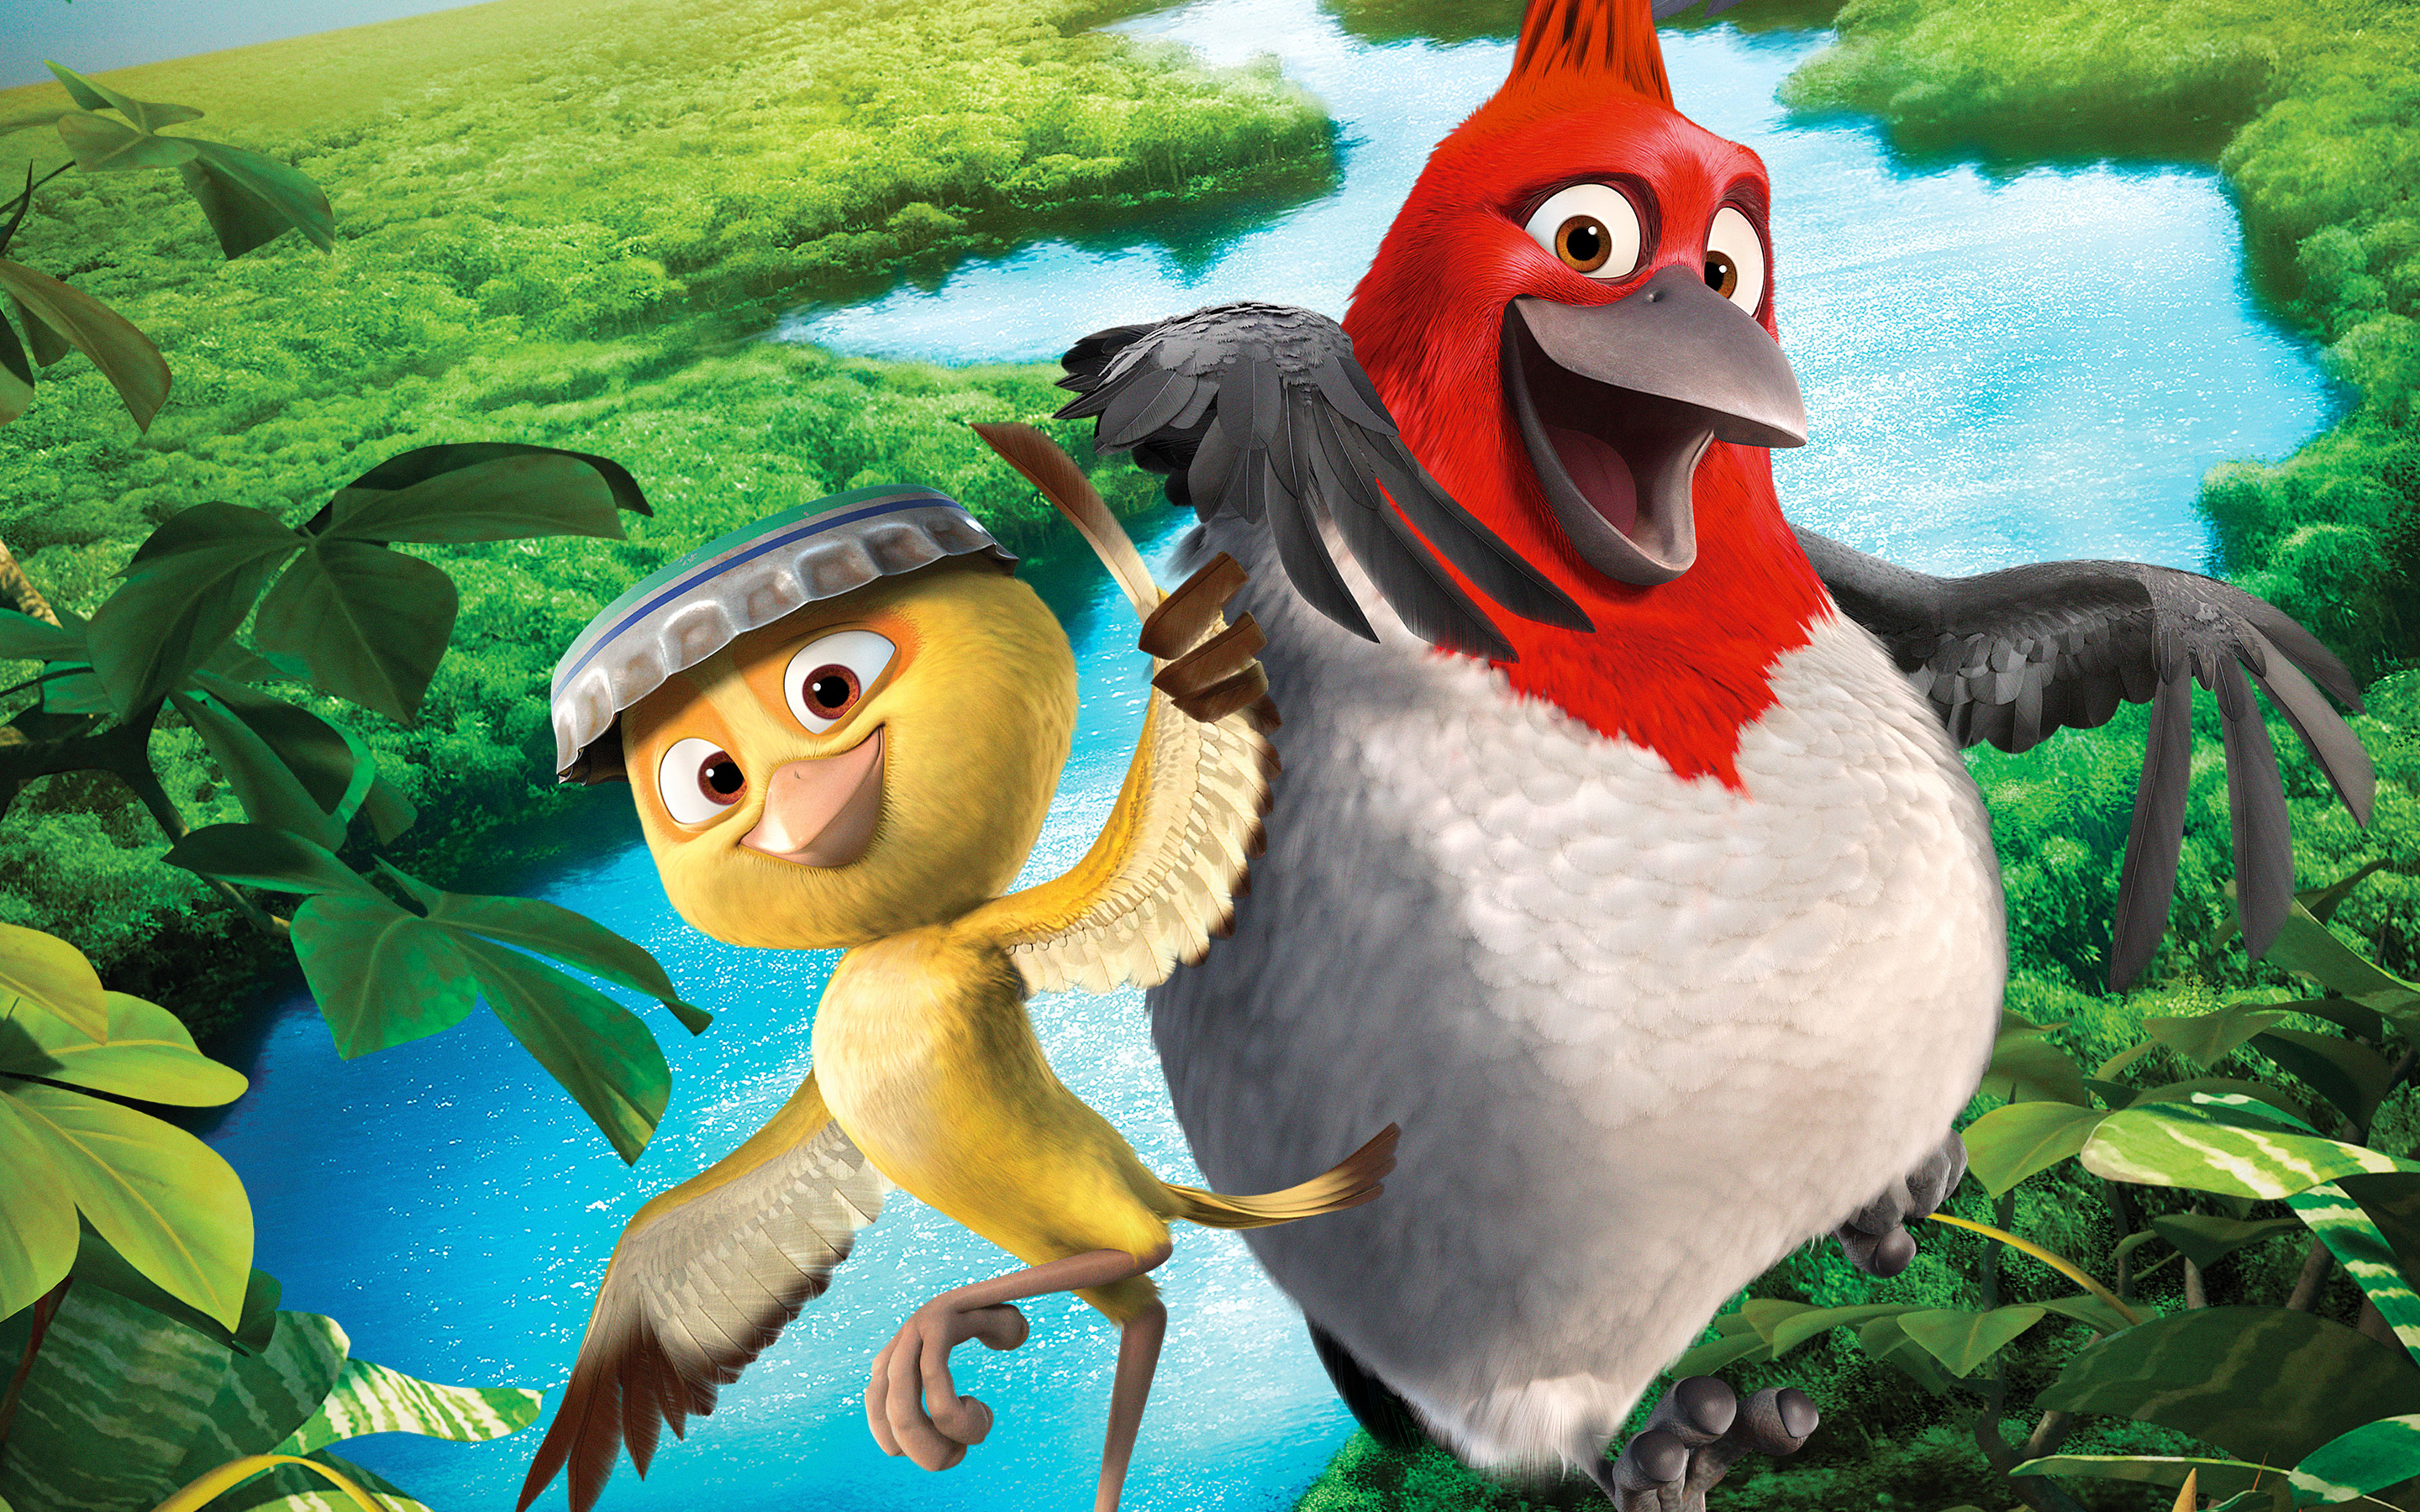 rio 2 full hd wallpaper and background image | 2880x1800 | id:618175